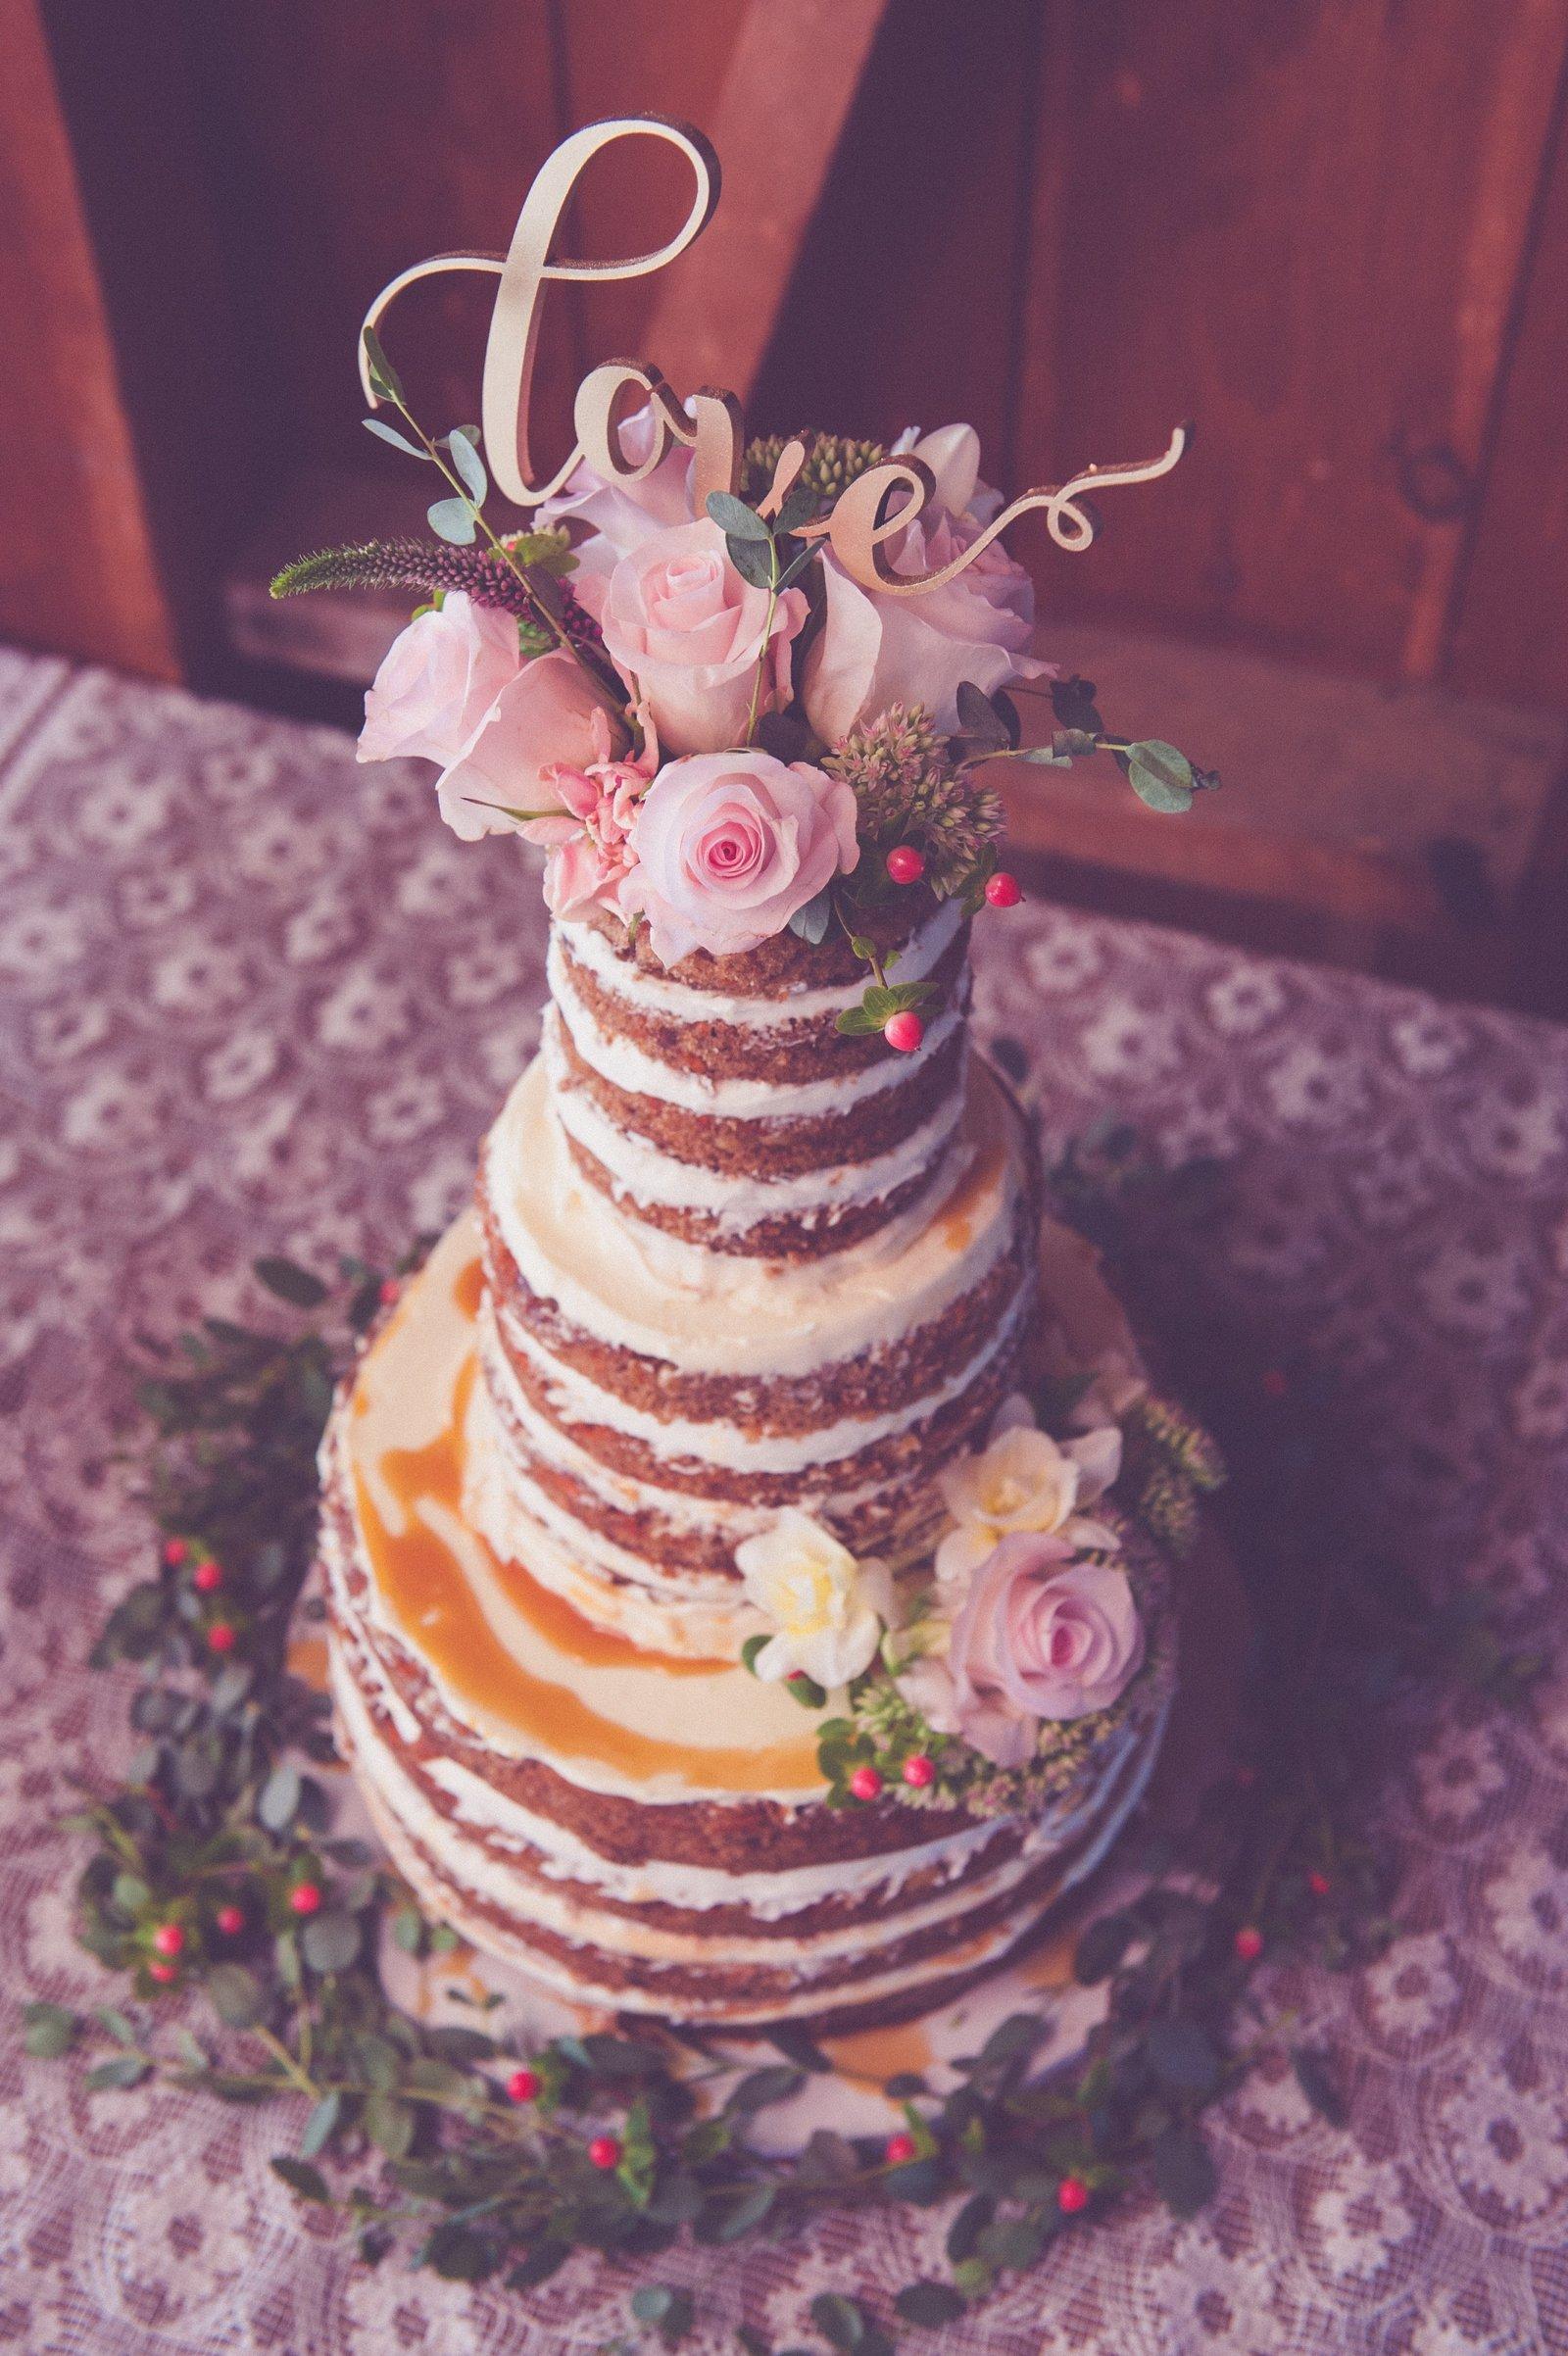 naked wedding cake, wedding cake